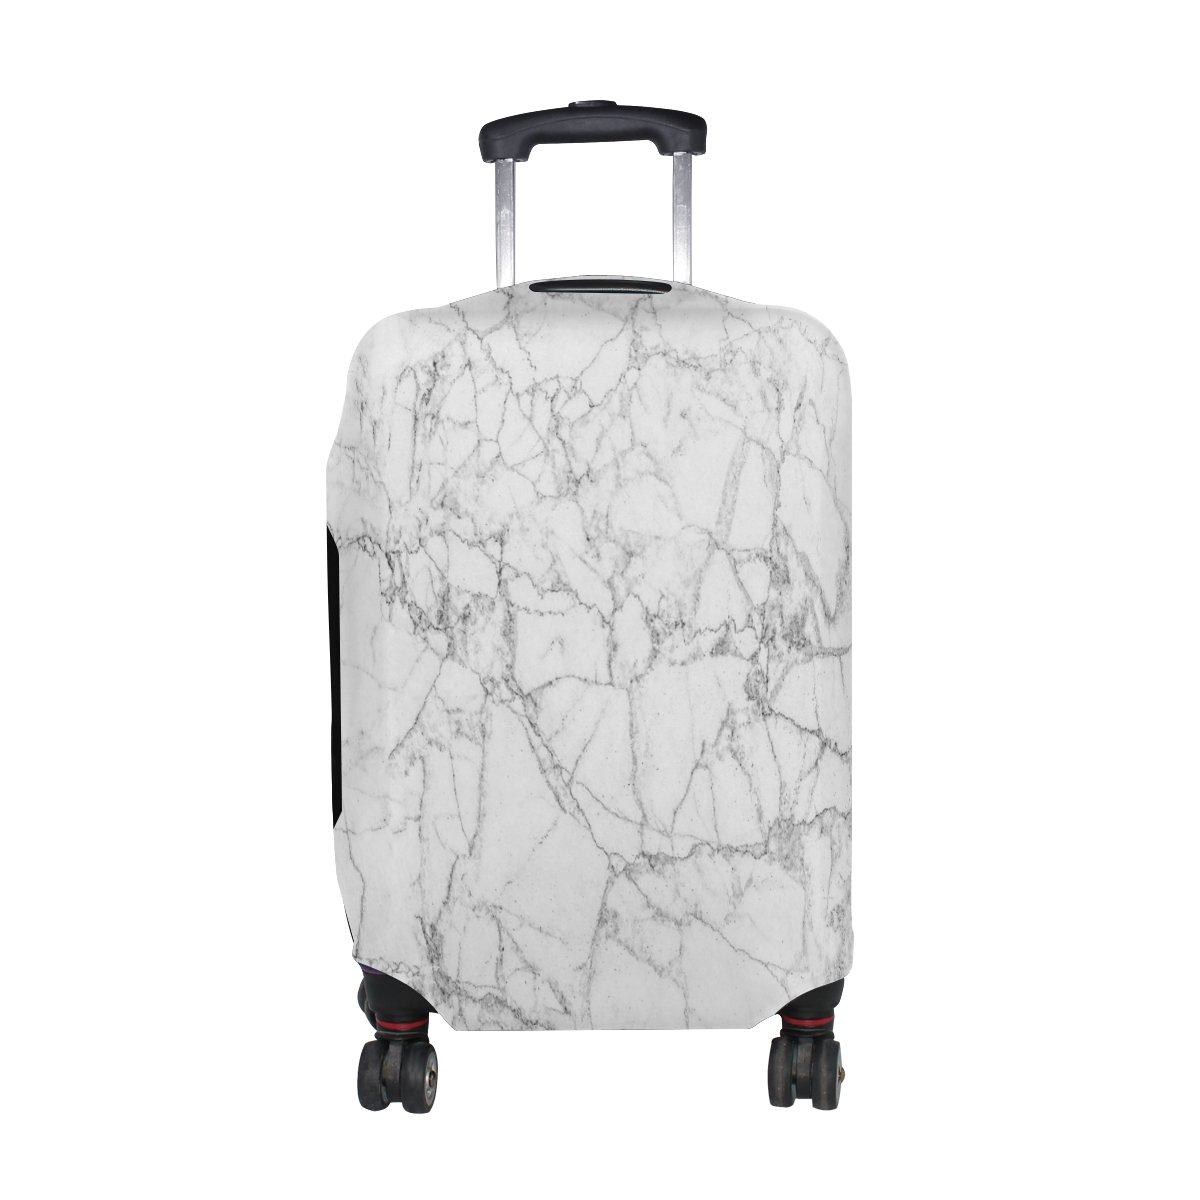 Cooper girl White Marble Travel Luggage Cover Suitcase Protector Fits 31-32 Inch